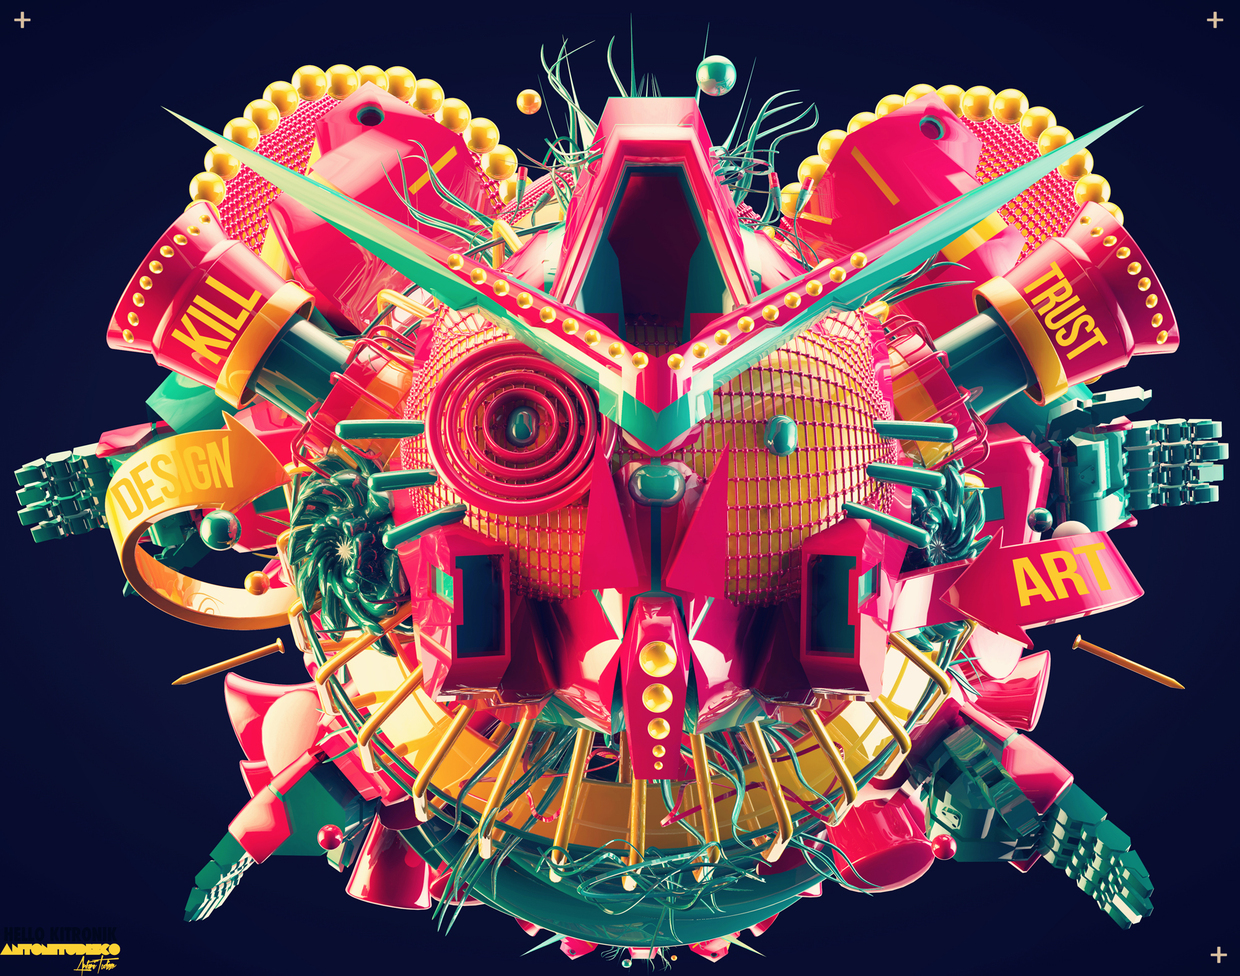 Les illustrations 3D tendances d'Antoni Tudisco